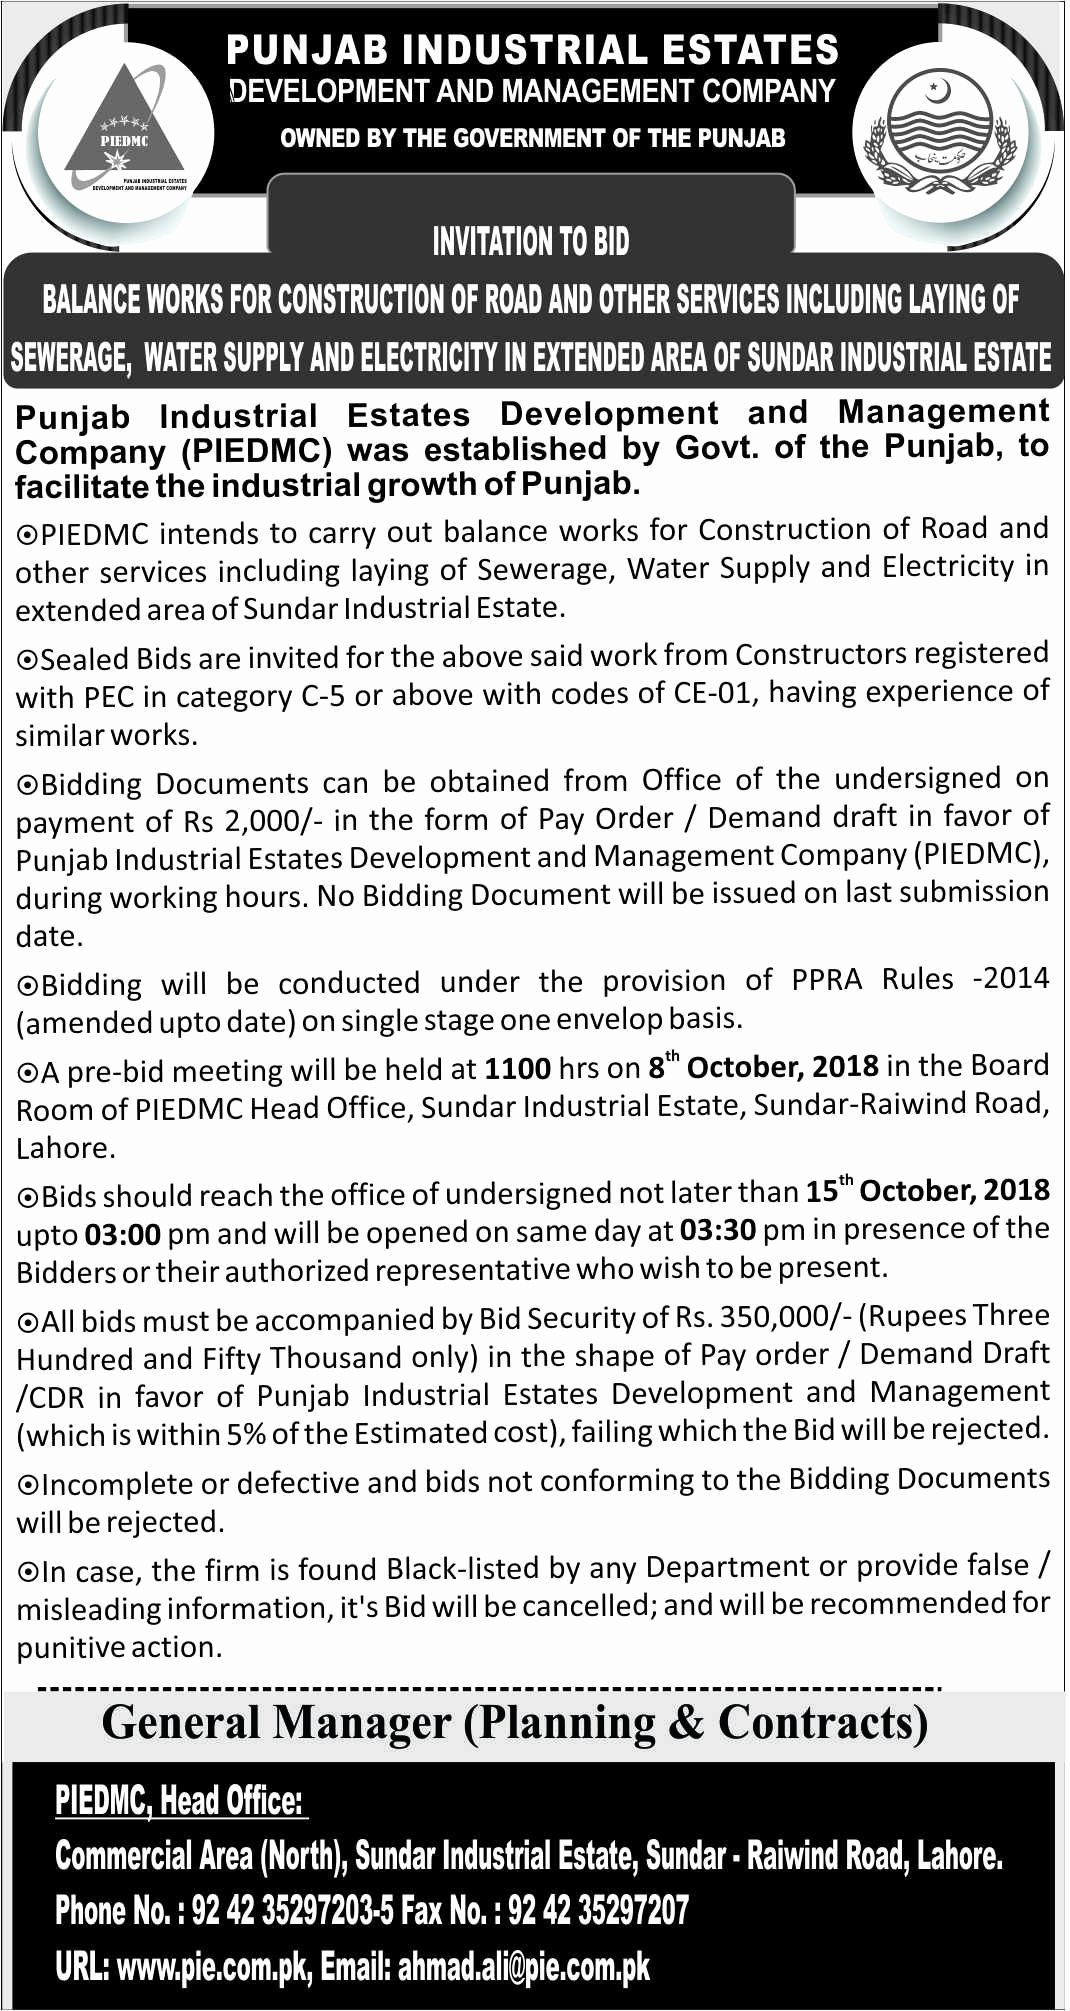 Invitation to Bid Template Beautiful Invitation to Bid – Balance Works for Construction Of Road